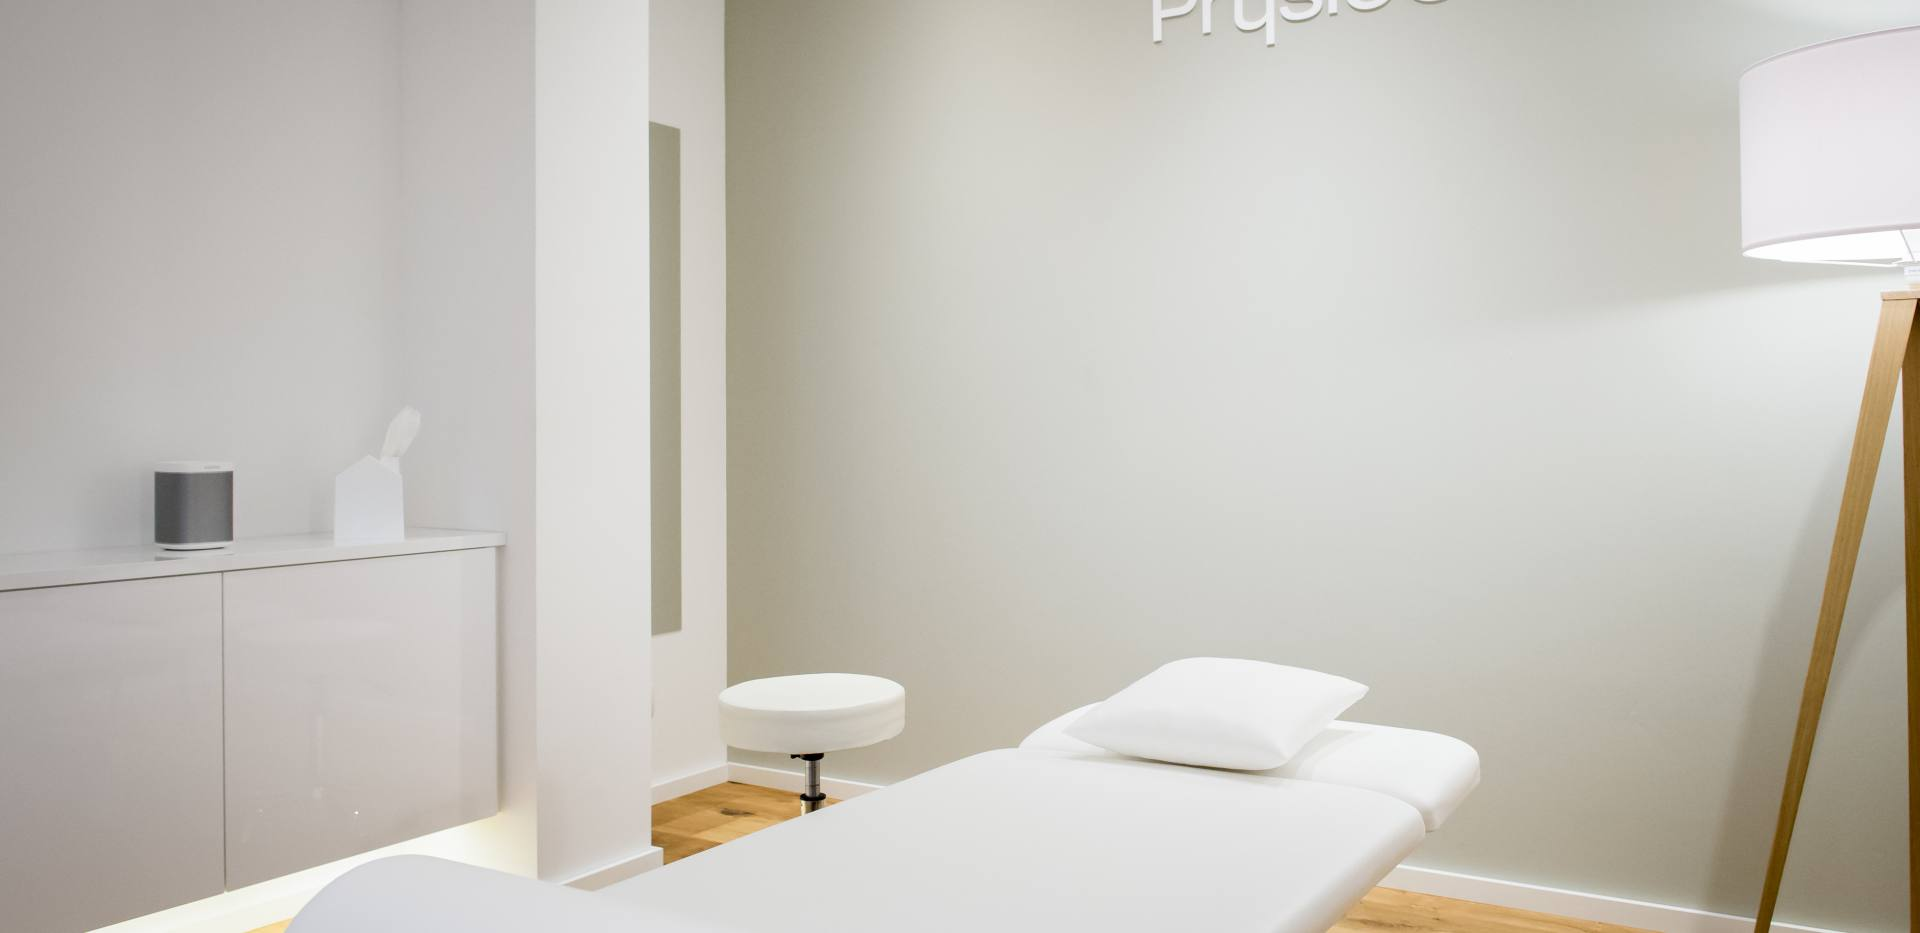 wellness-bei-physiocare, © PhysioCare